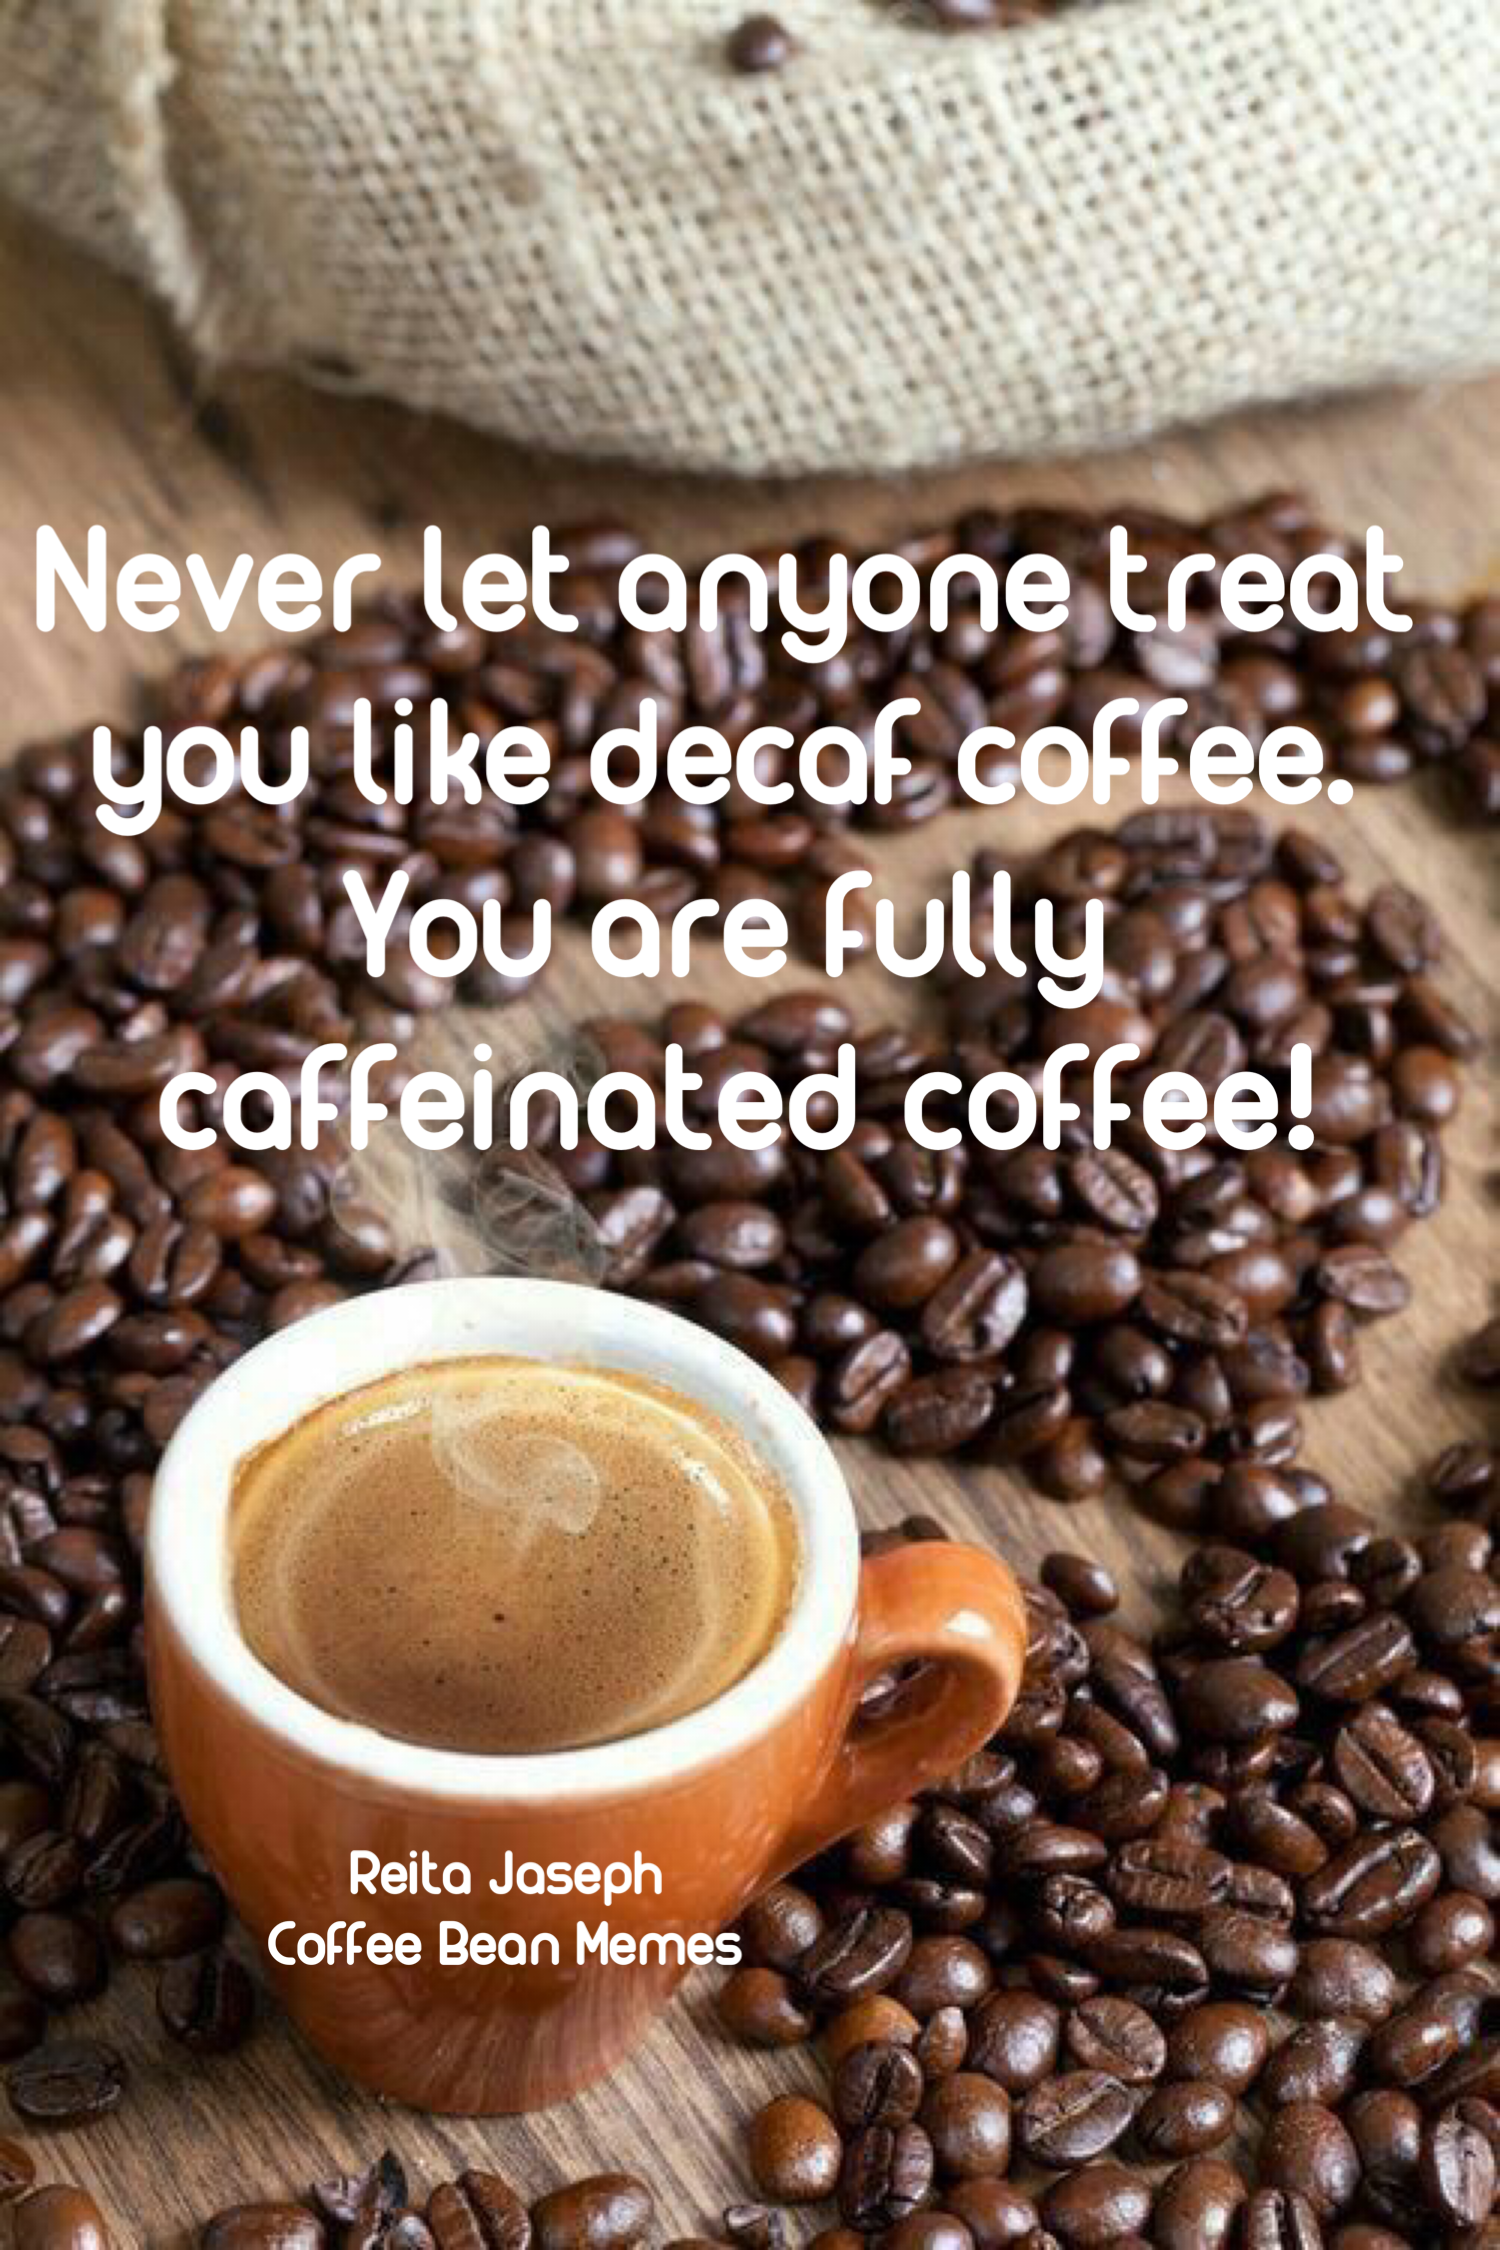 coffeebeanmemes #Coffee #coffeequotes #coffeehumor | Coffee Bean ... #coffeeBean